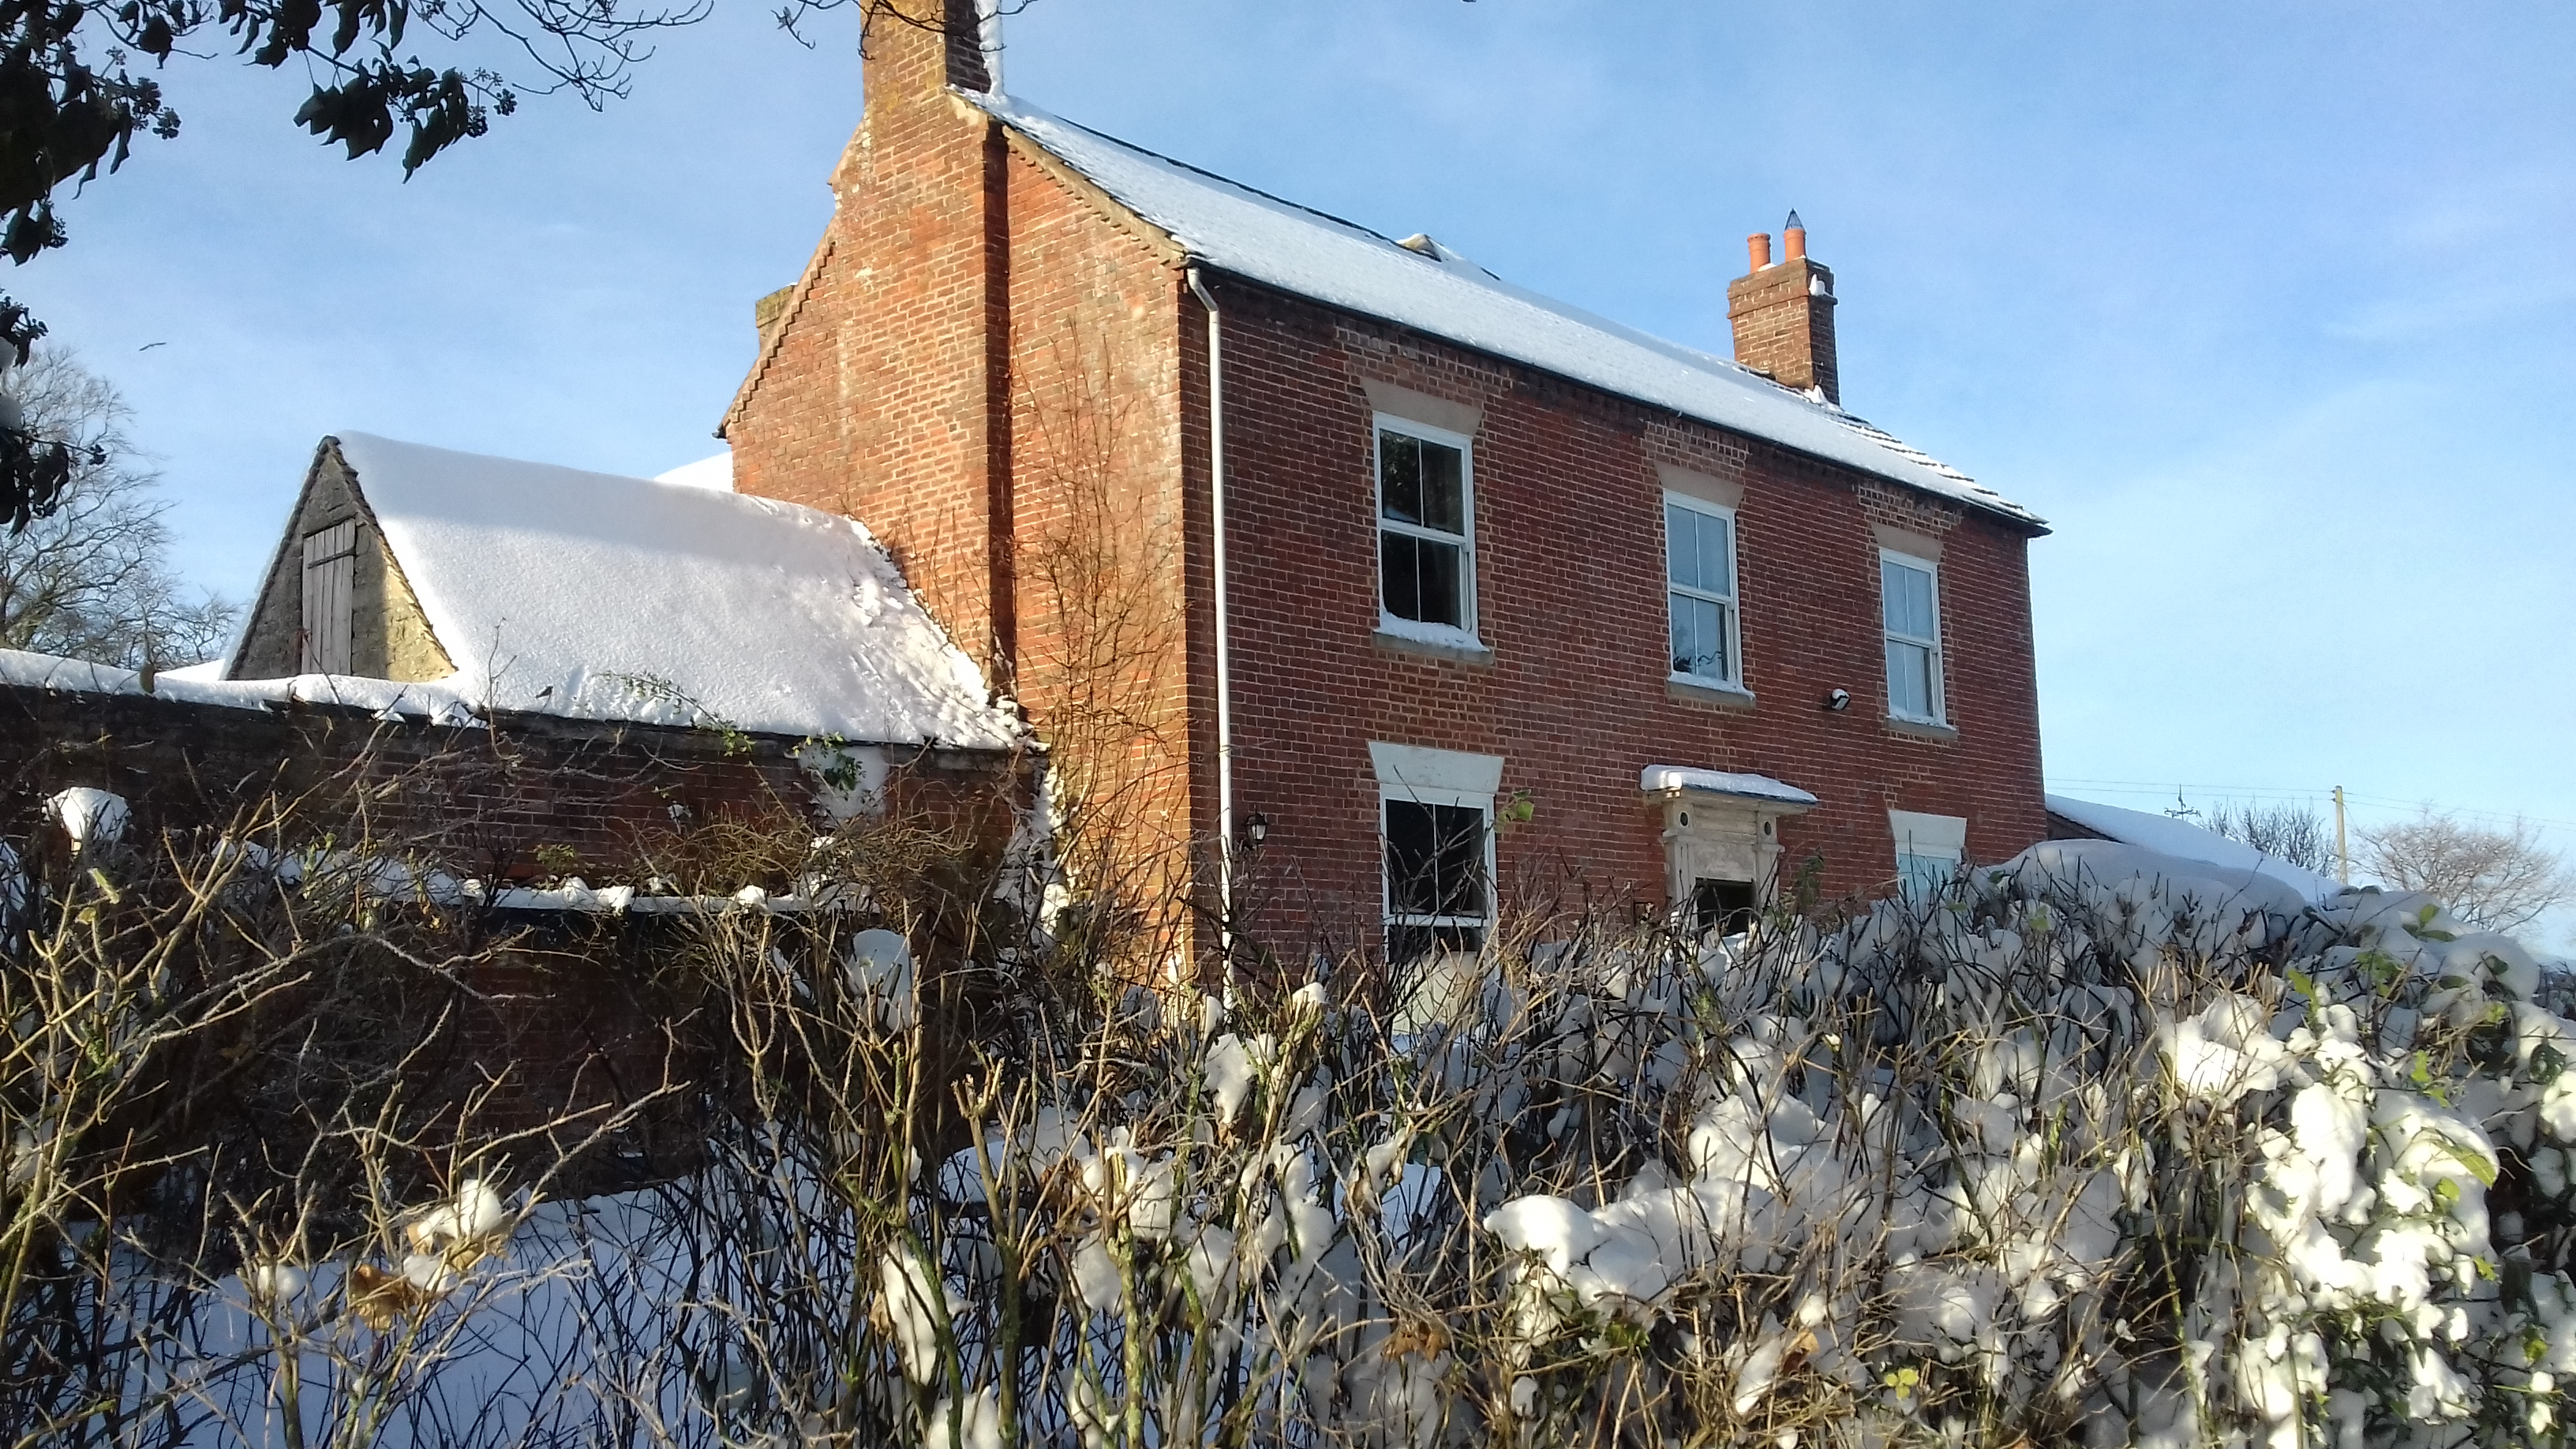 Broome Park Farmhouse in the snow